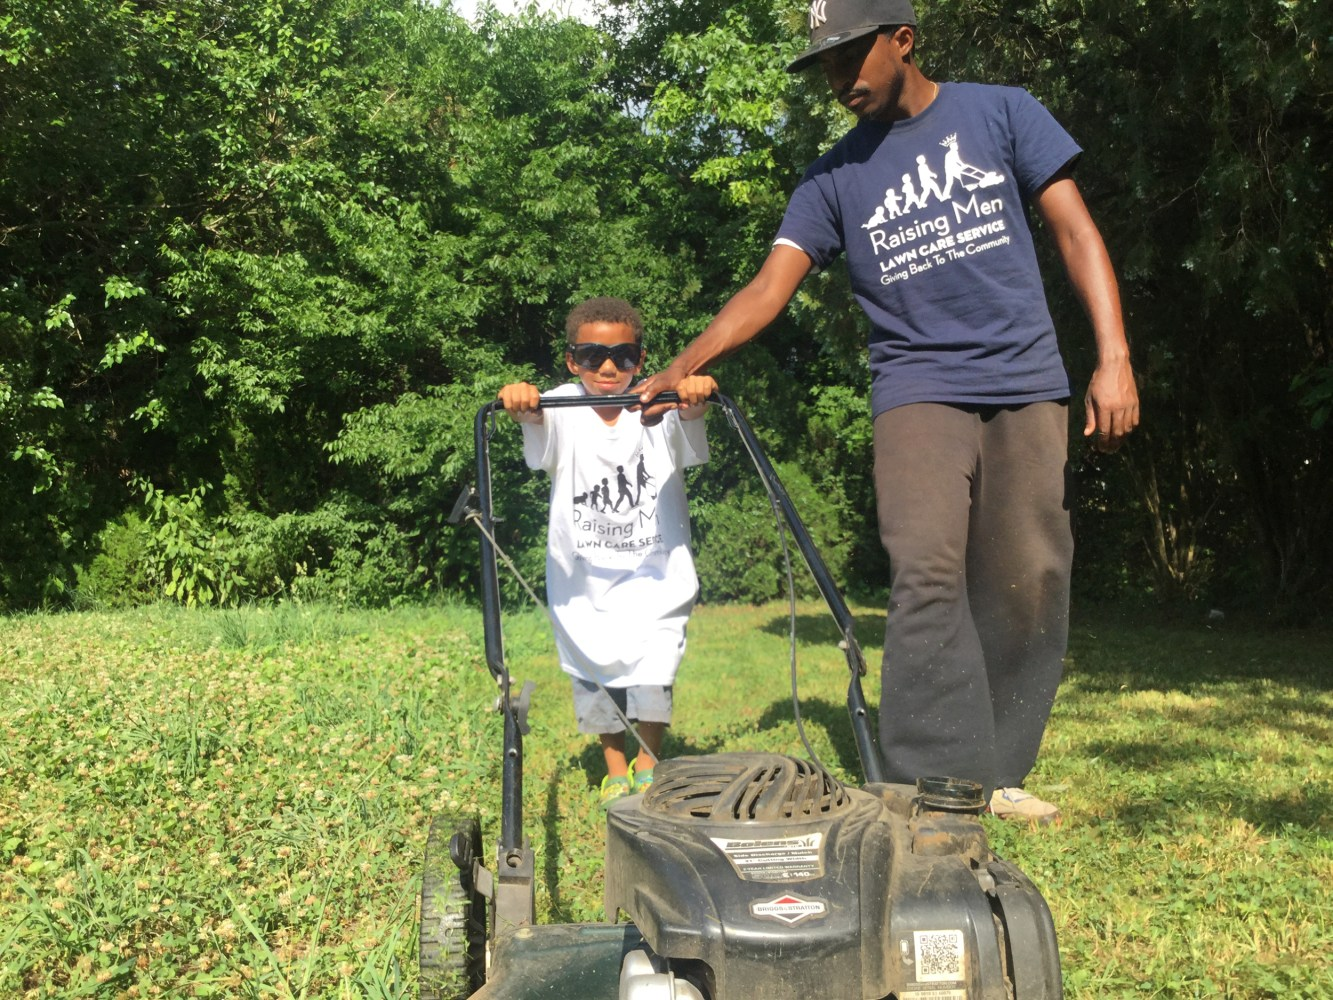 College Student Starting Free Lawn Mowing Business Gave